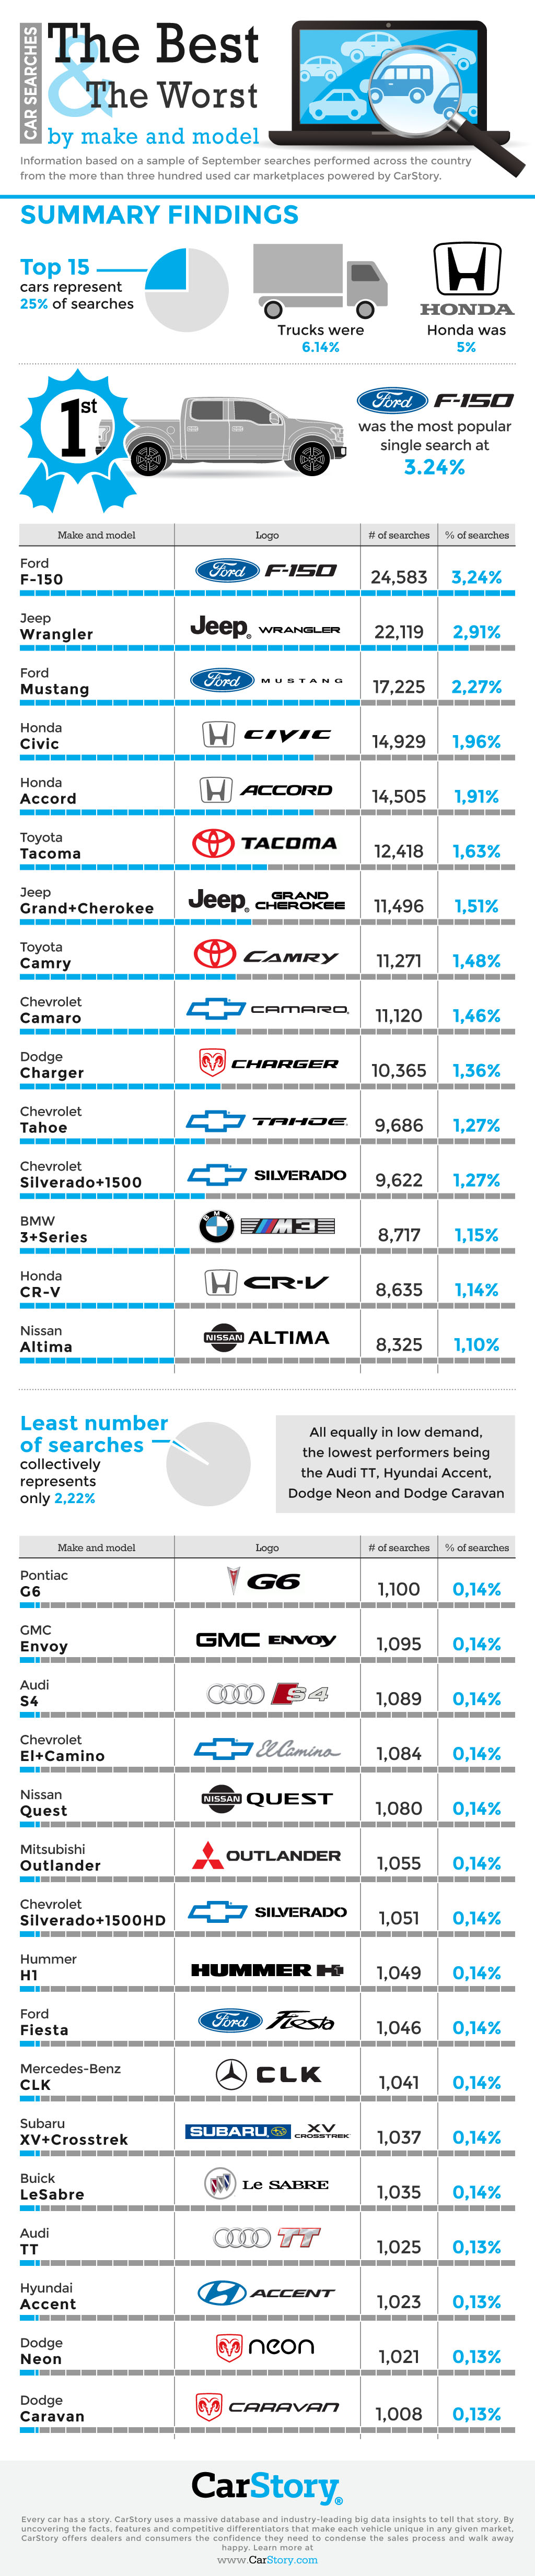 CarStory Infographic Cars Sold September